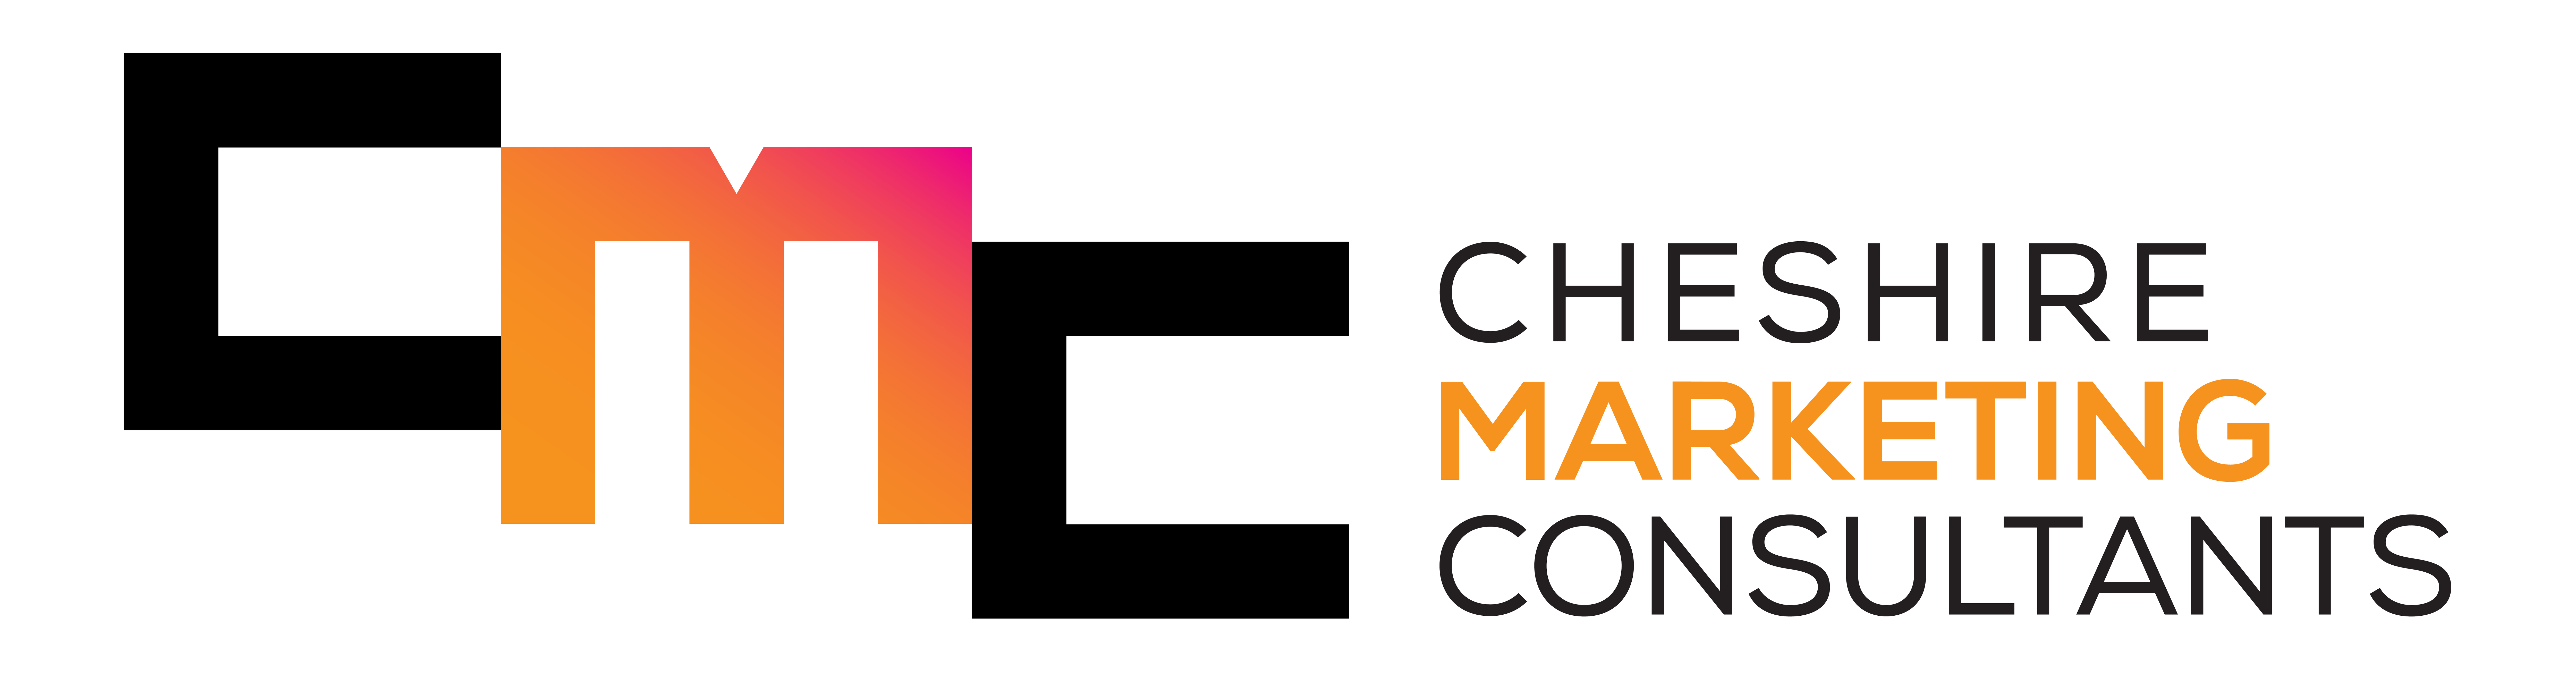 Cheshire Marketing Consultants